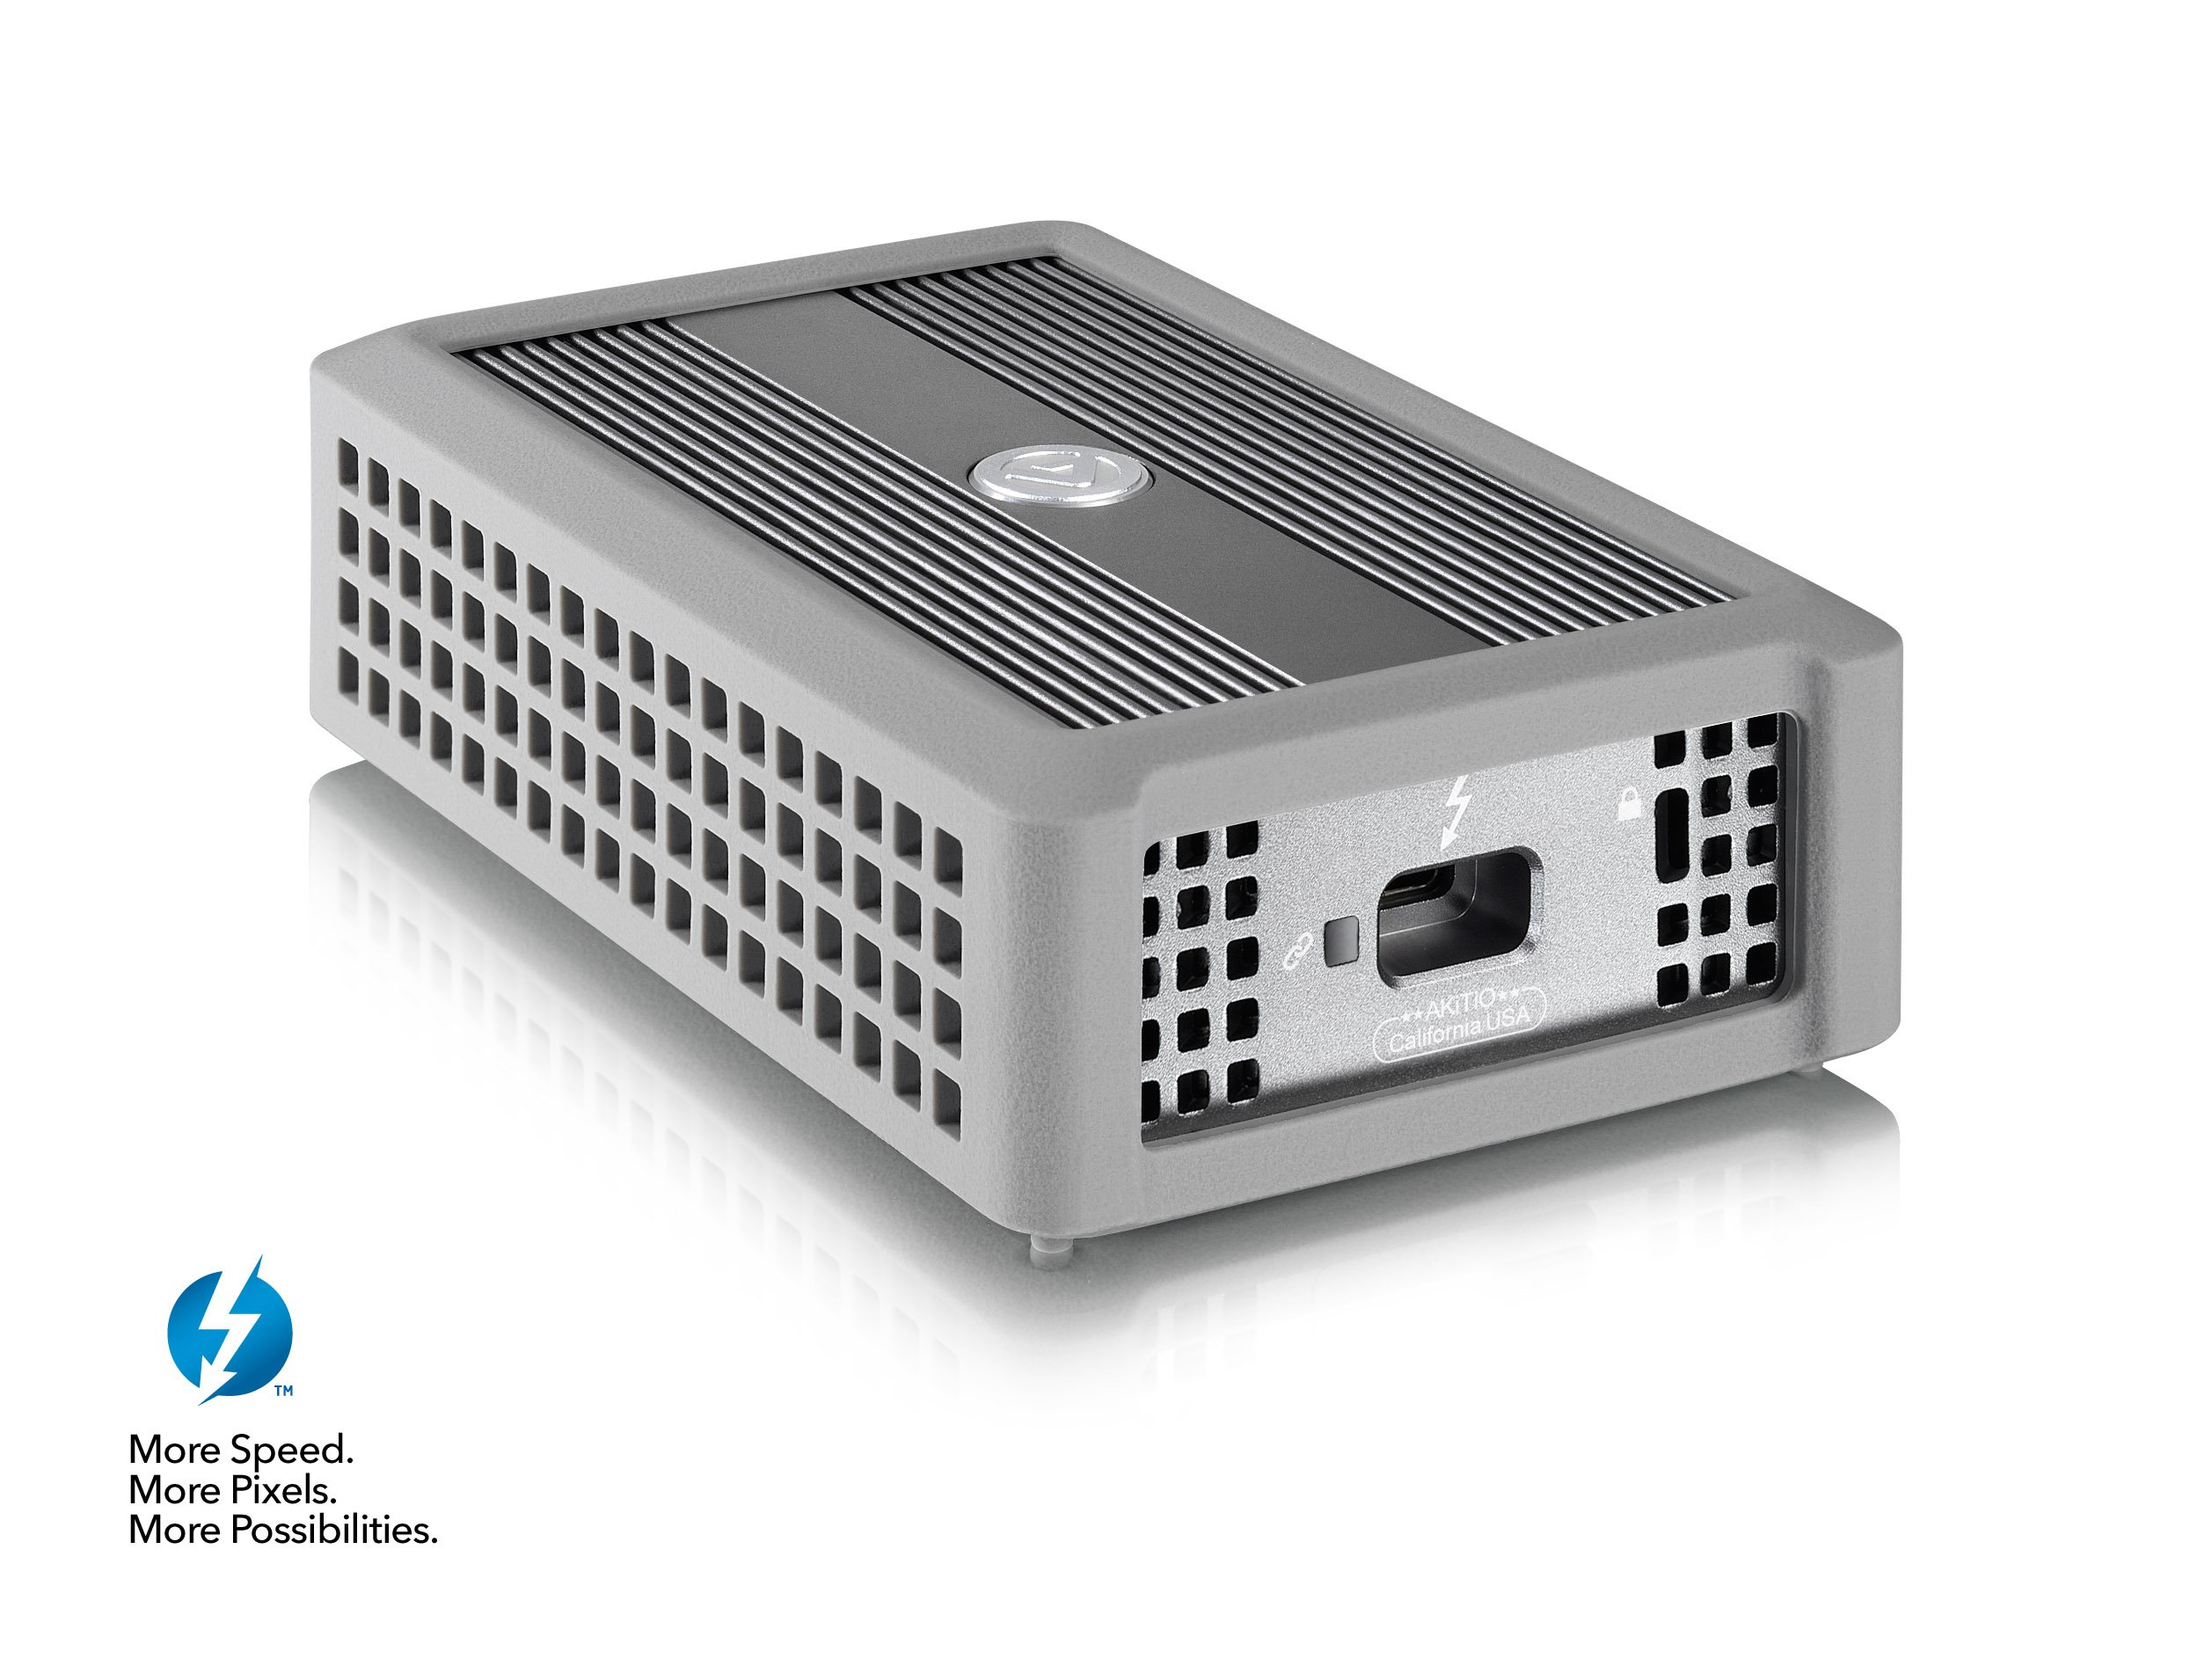 Akitio T3TGAA0008Y000 T3-10G: (Thunderbolt3 to 10G Adapter with Intel Alpine Ridge + Aquantia AQC107S) Electronics by Akitio